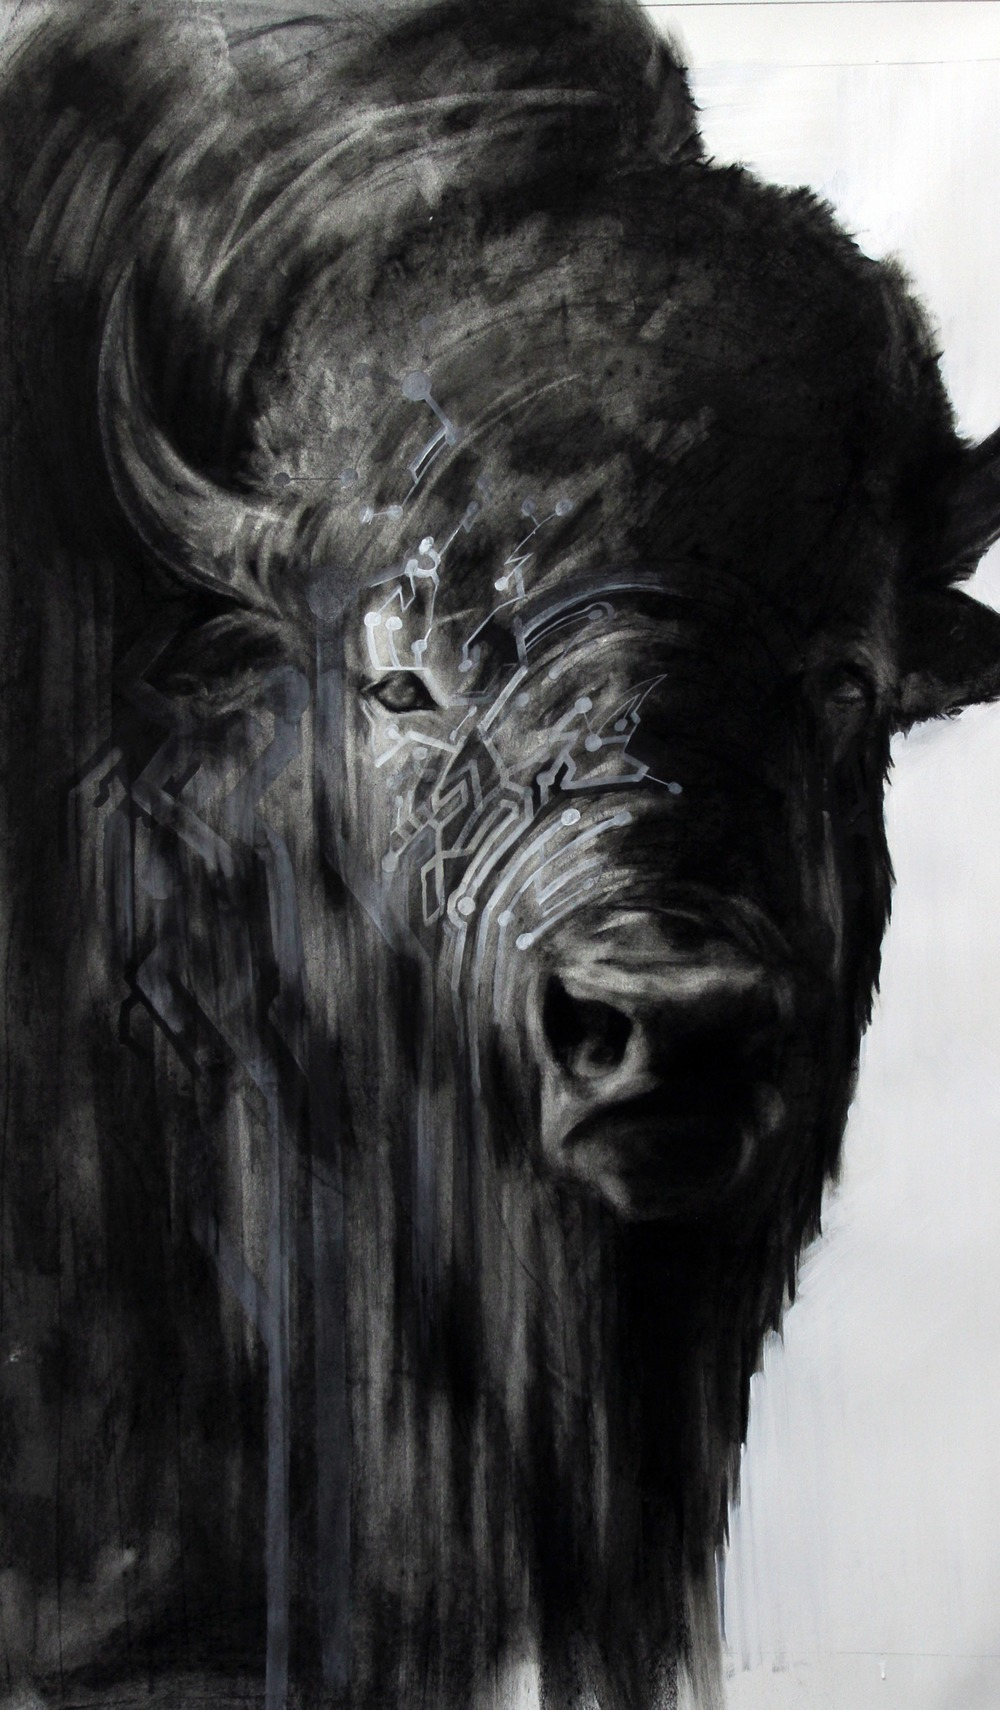 Circuit Bison,  2012  Charcoal and Acrylic on stretched paper  28x48""